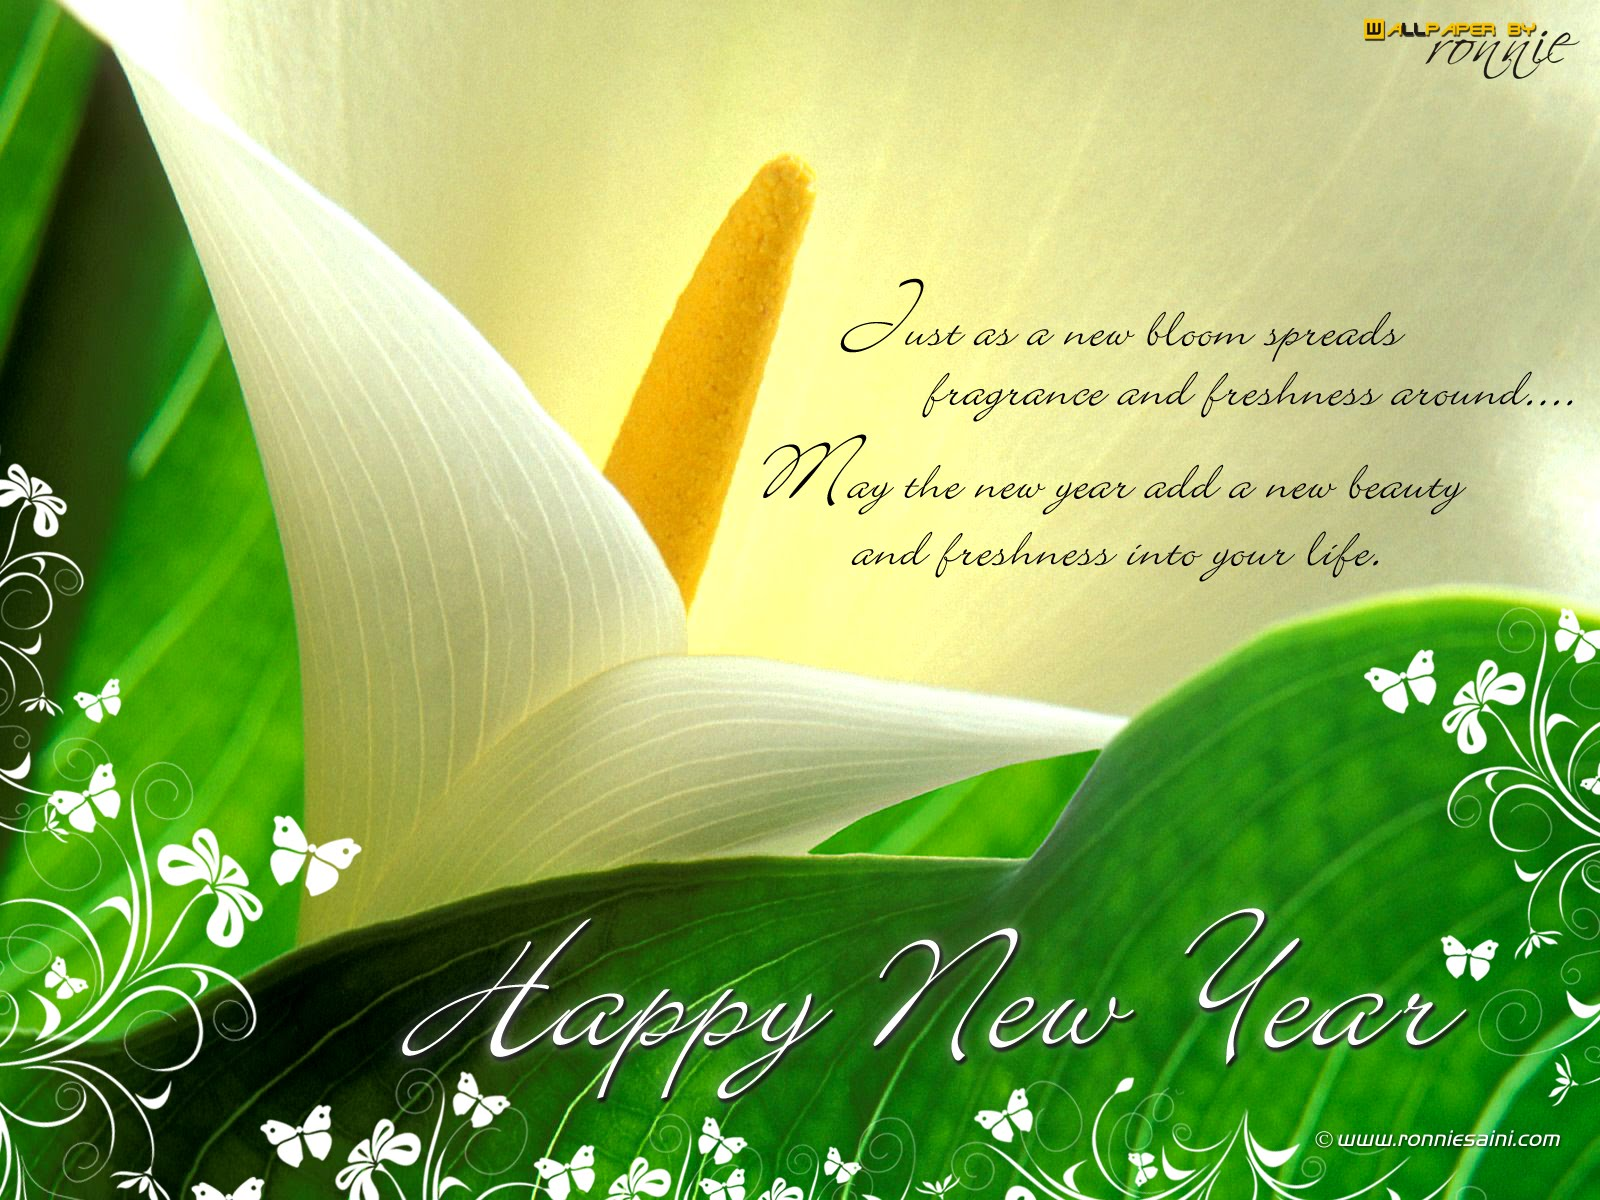 click on image to enlarge it. 1600 x 1200.Happy New Year Wishes 2014  In Kannada